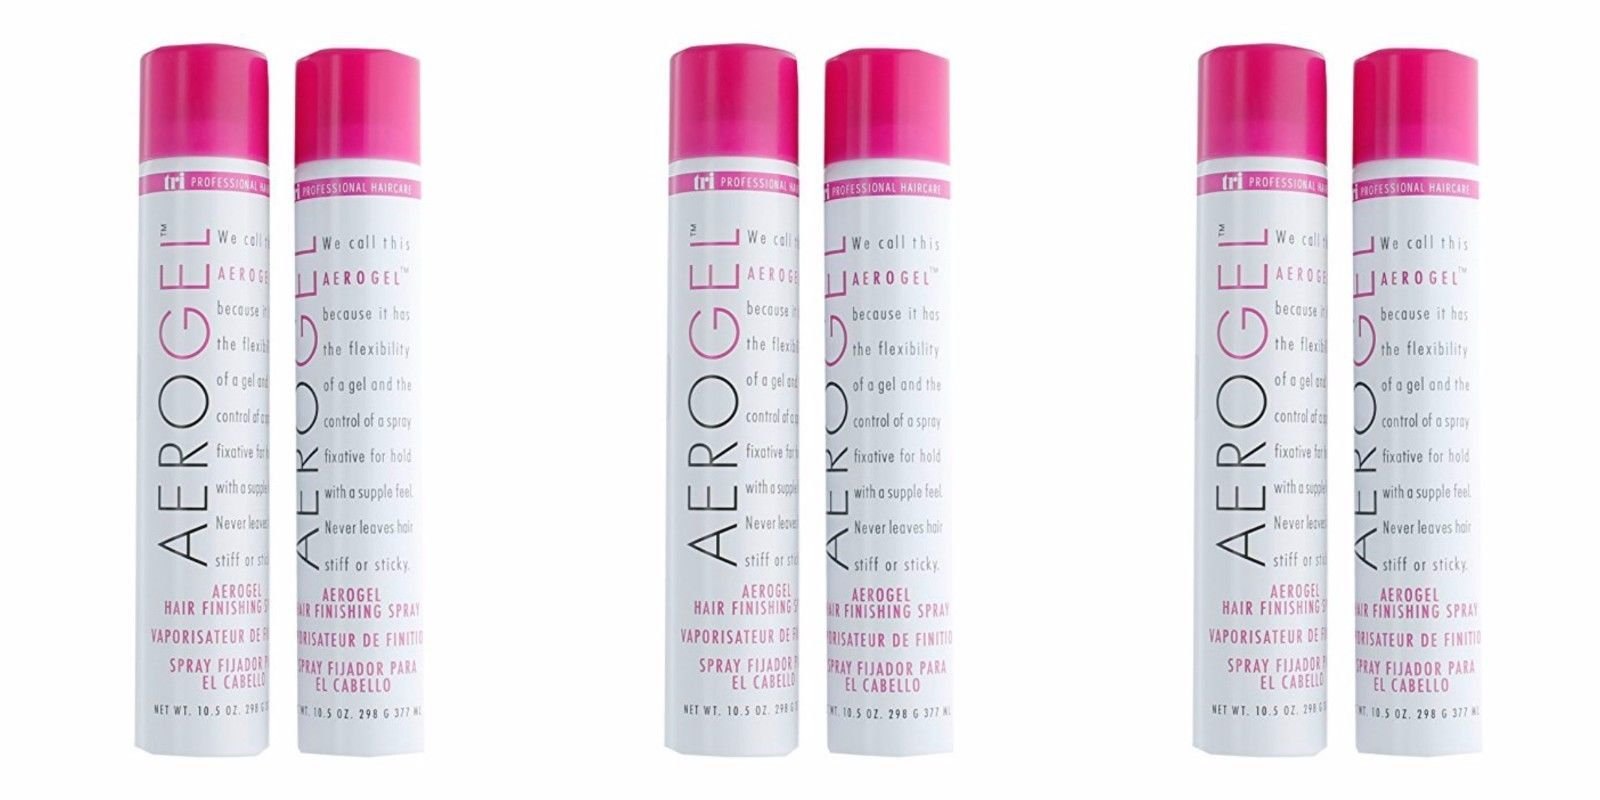 Tri Aerogel Hair Finishing Spray 10.5 oz - 6 cans